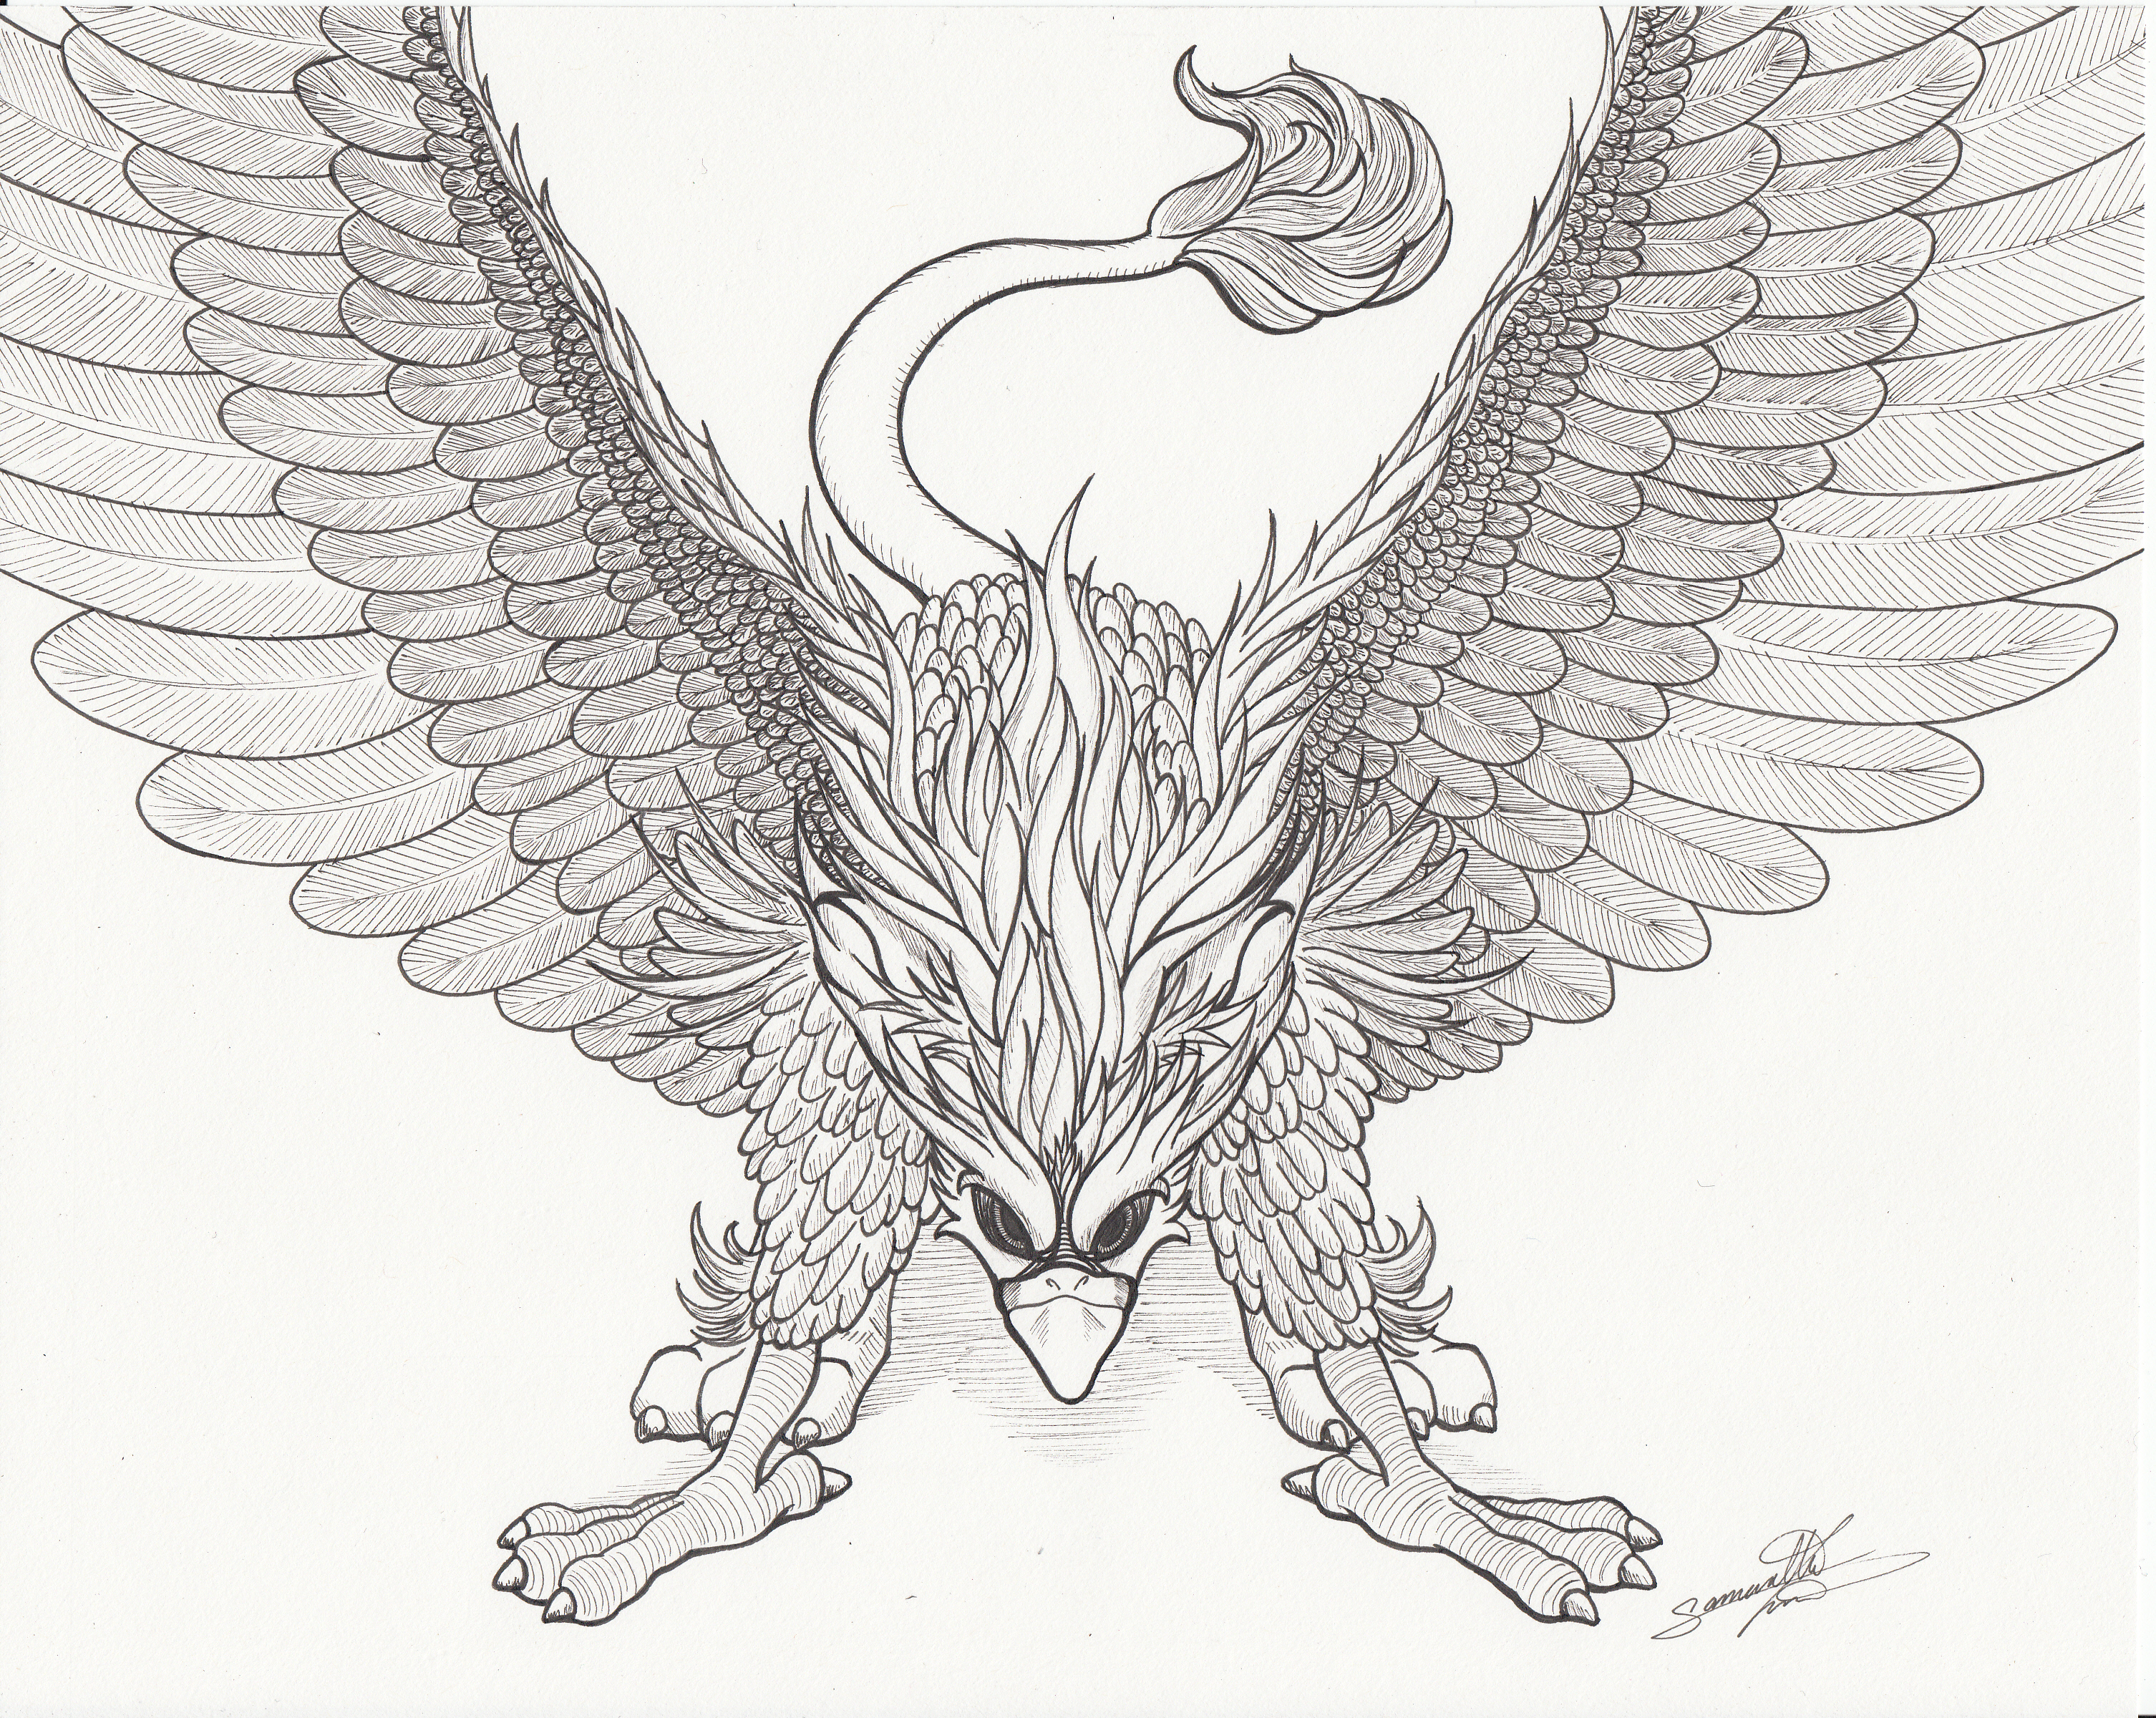 The Mighty Griffin